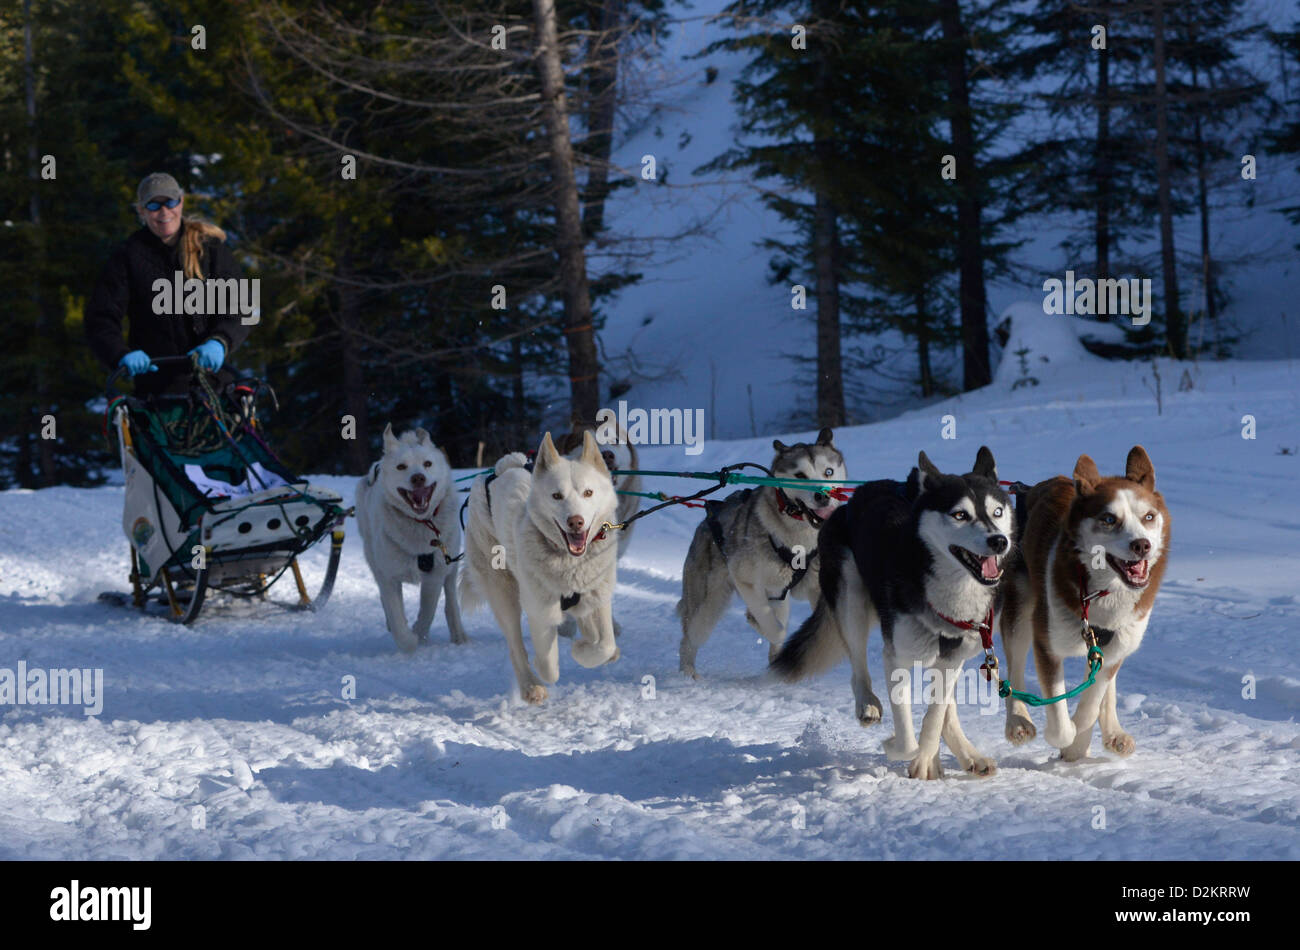 Musher and dogs taking part in the Eagle Cap Extreme dog sled race in Oregon's Wallowa Mountains. - Stock Image